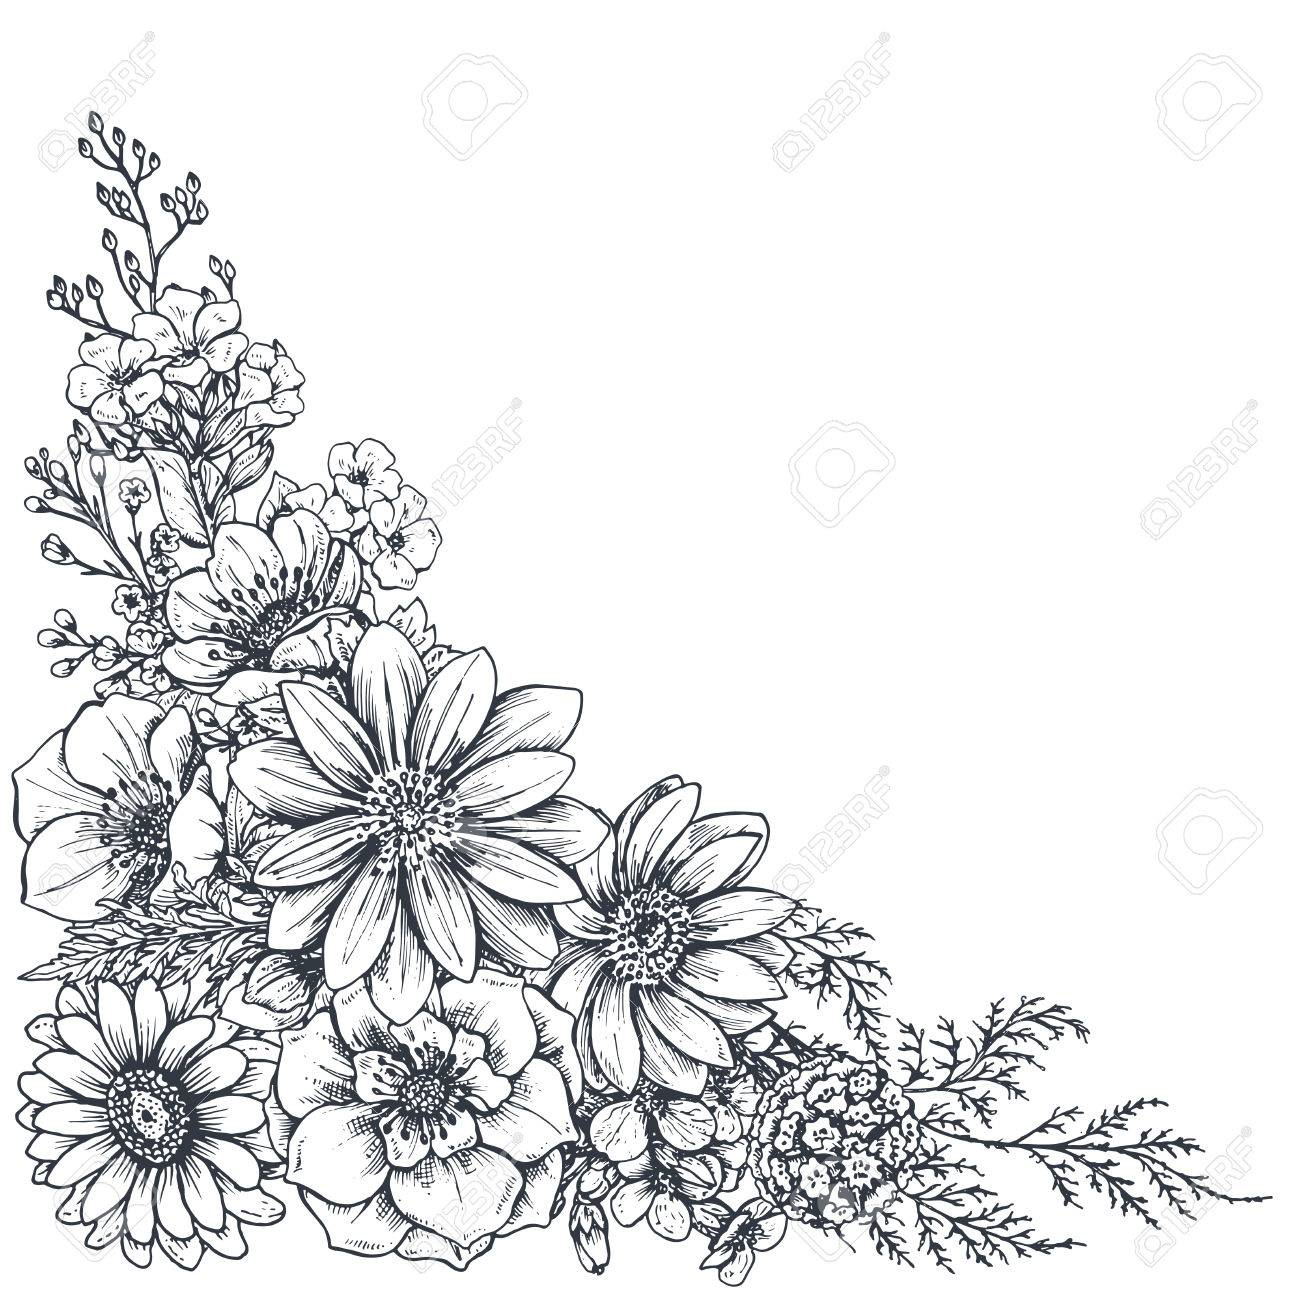 floral backgrounds with hand drawn flowers and plants monochrome vector illustration in sketch style - Floral Backgrounds